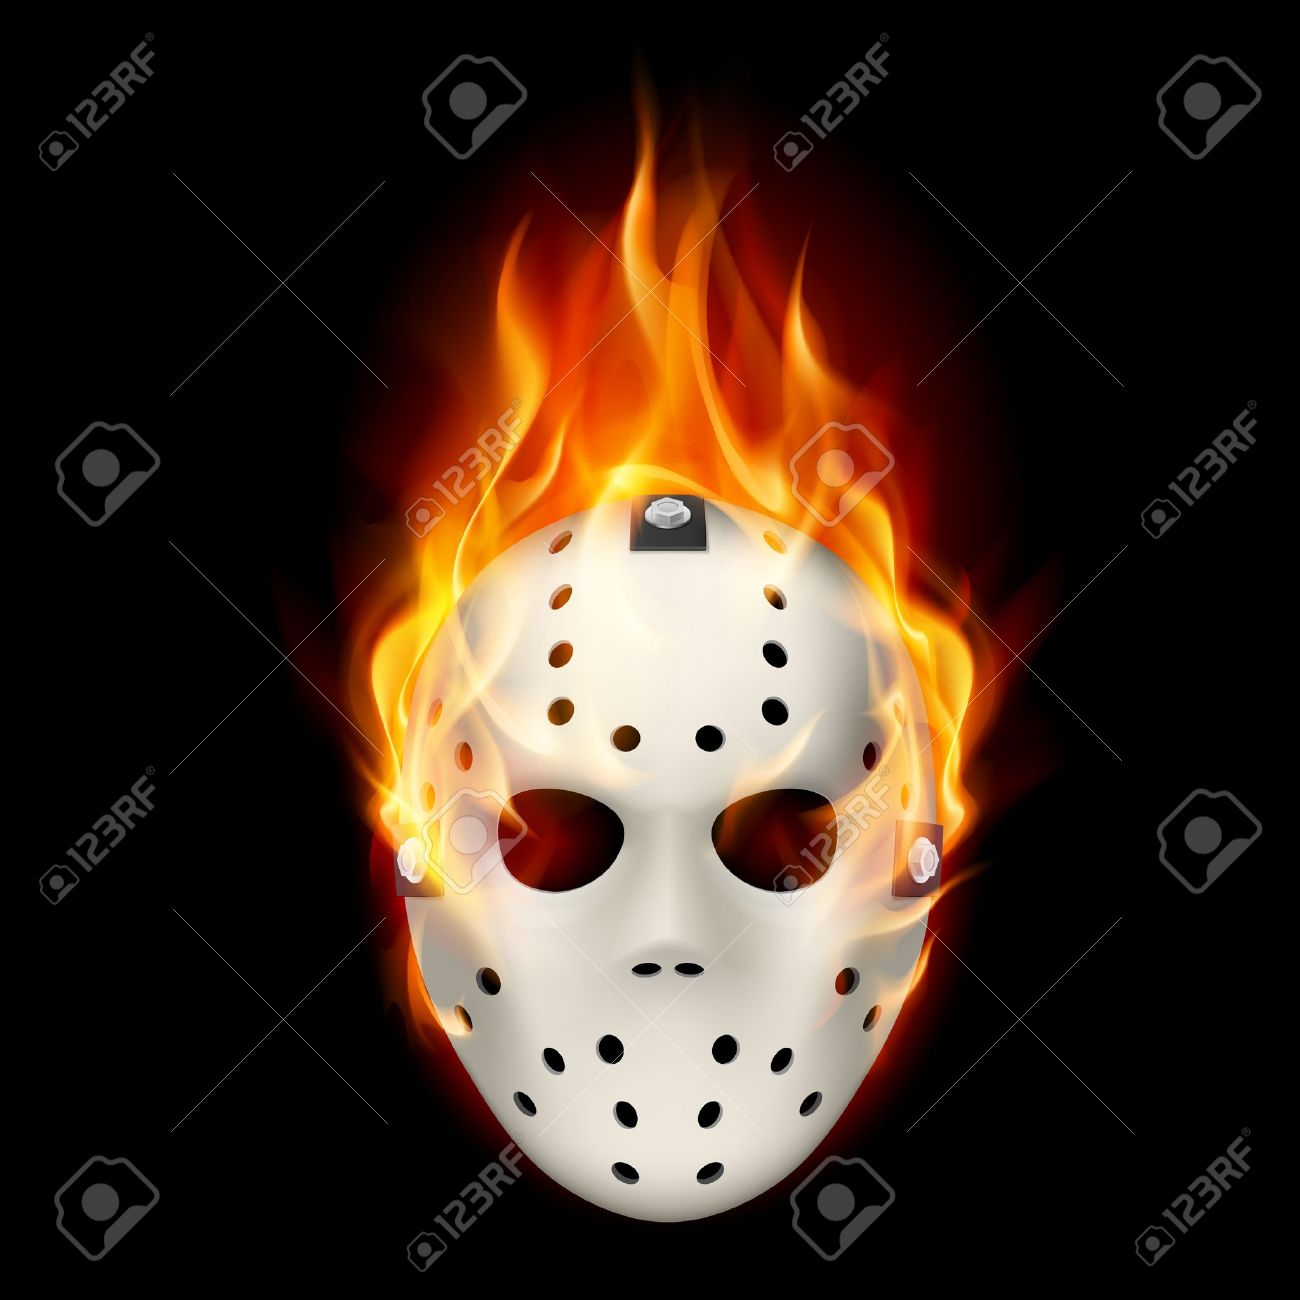 Burning hockey mask. Illustration on black  background for design. Stock Vector - 20332583